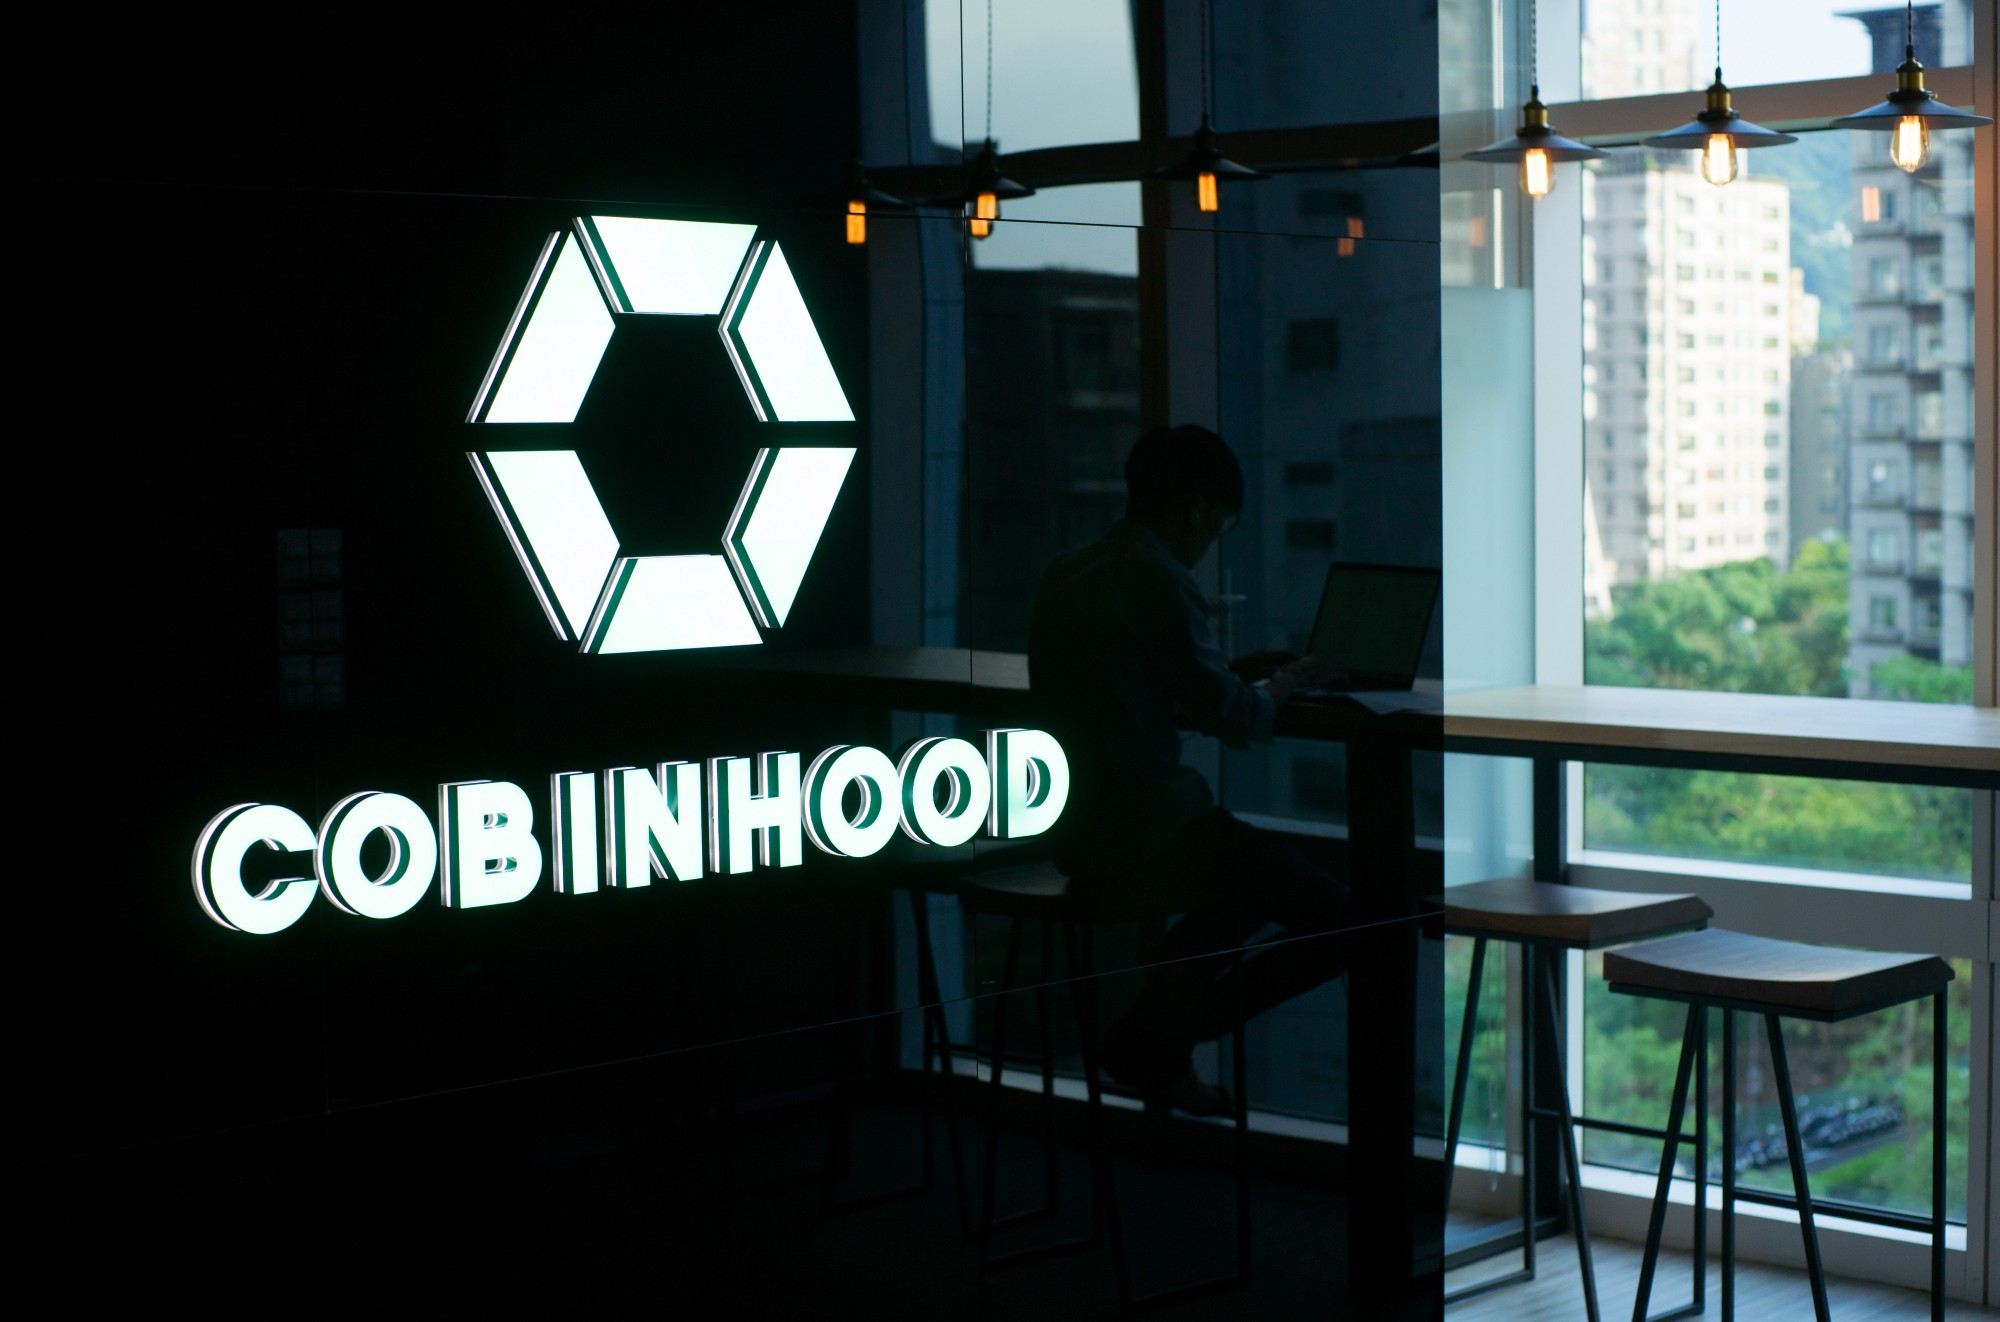 Cobinhood – to the moon and back